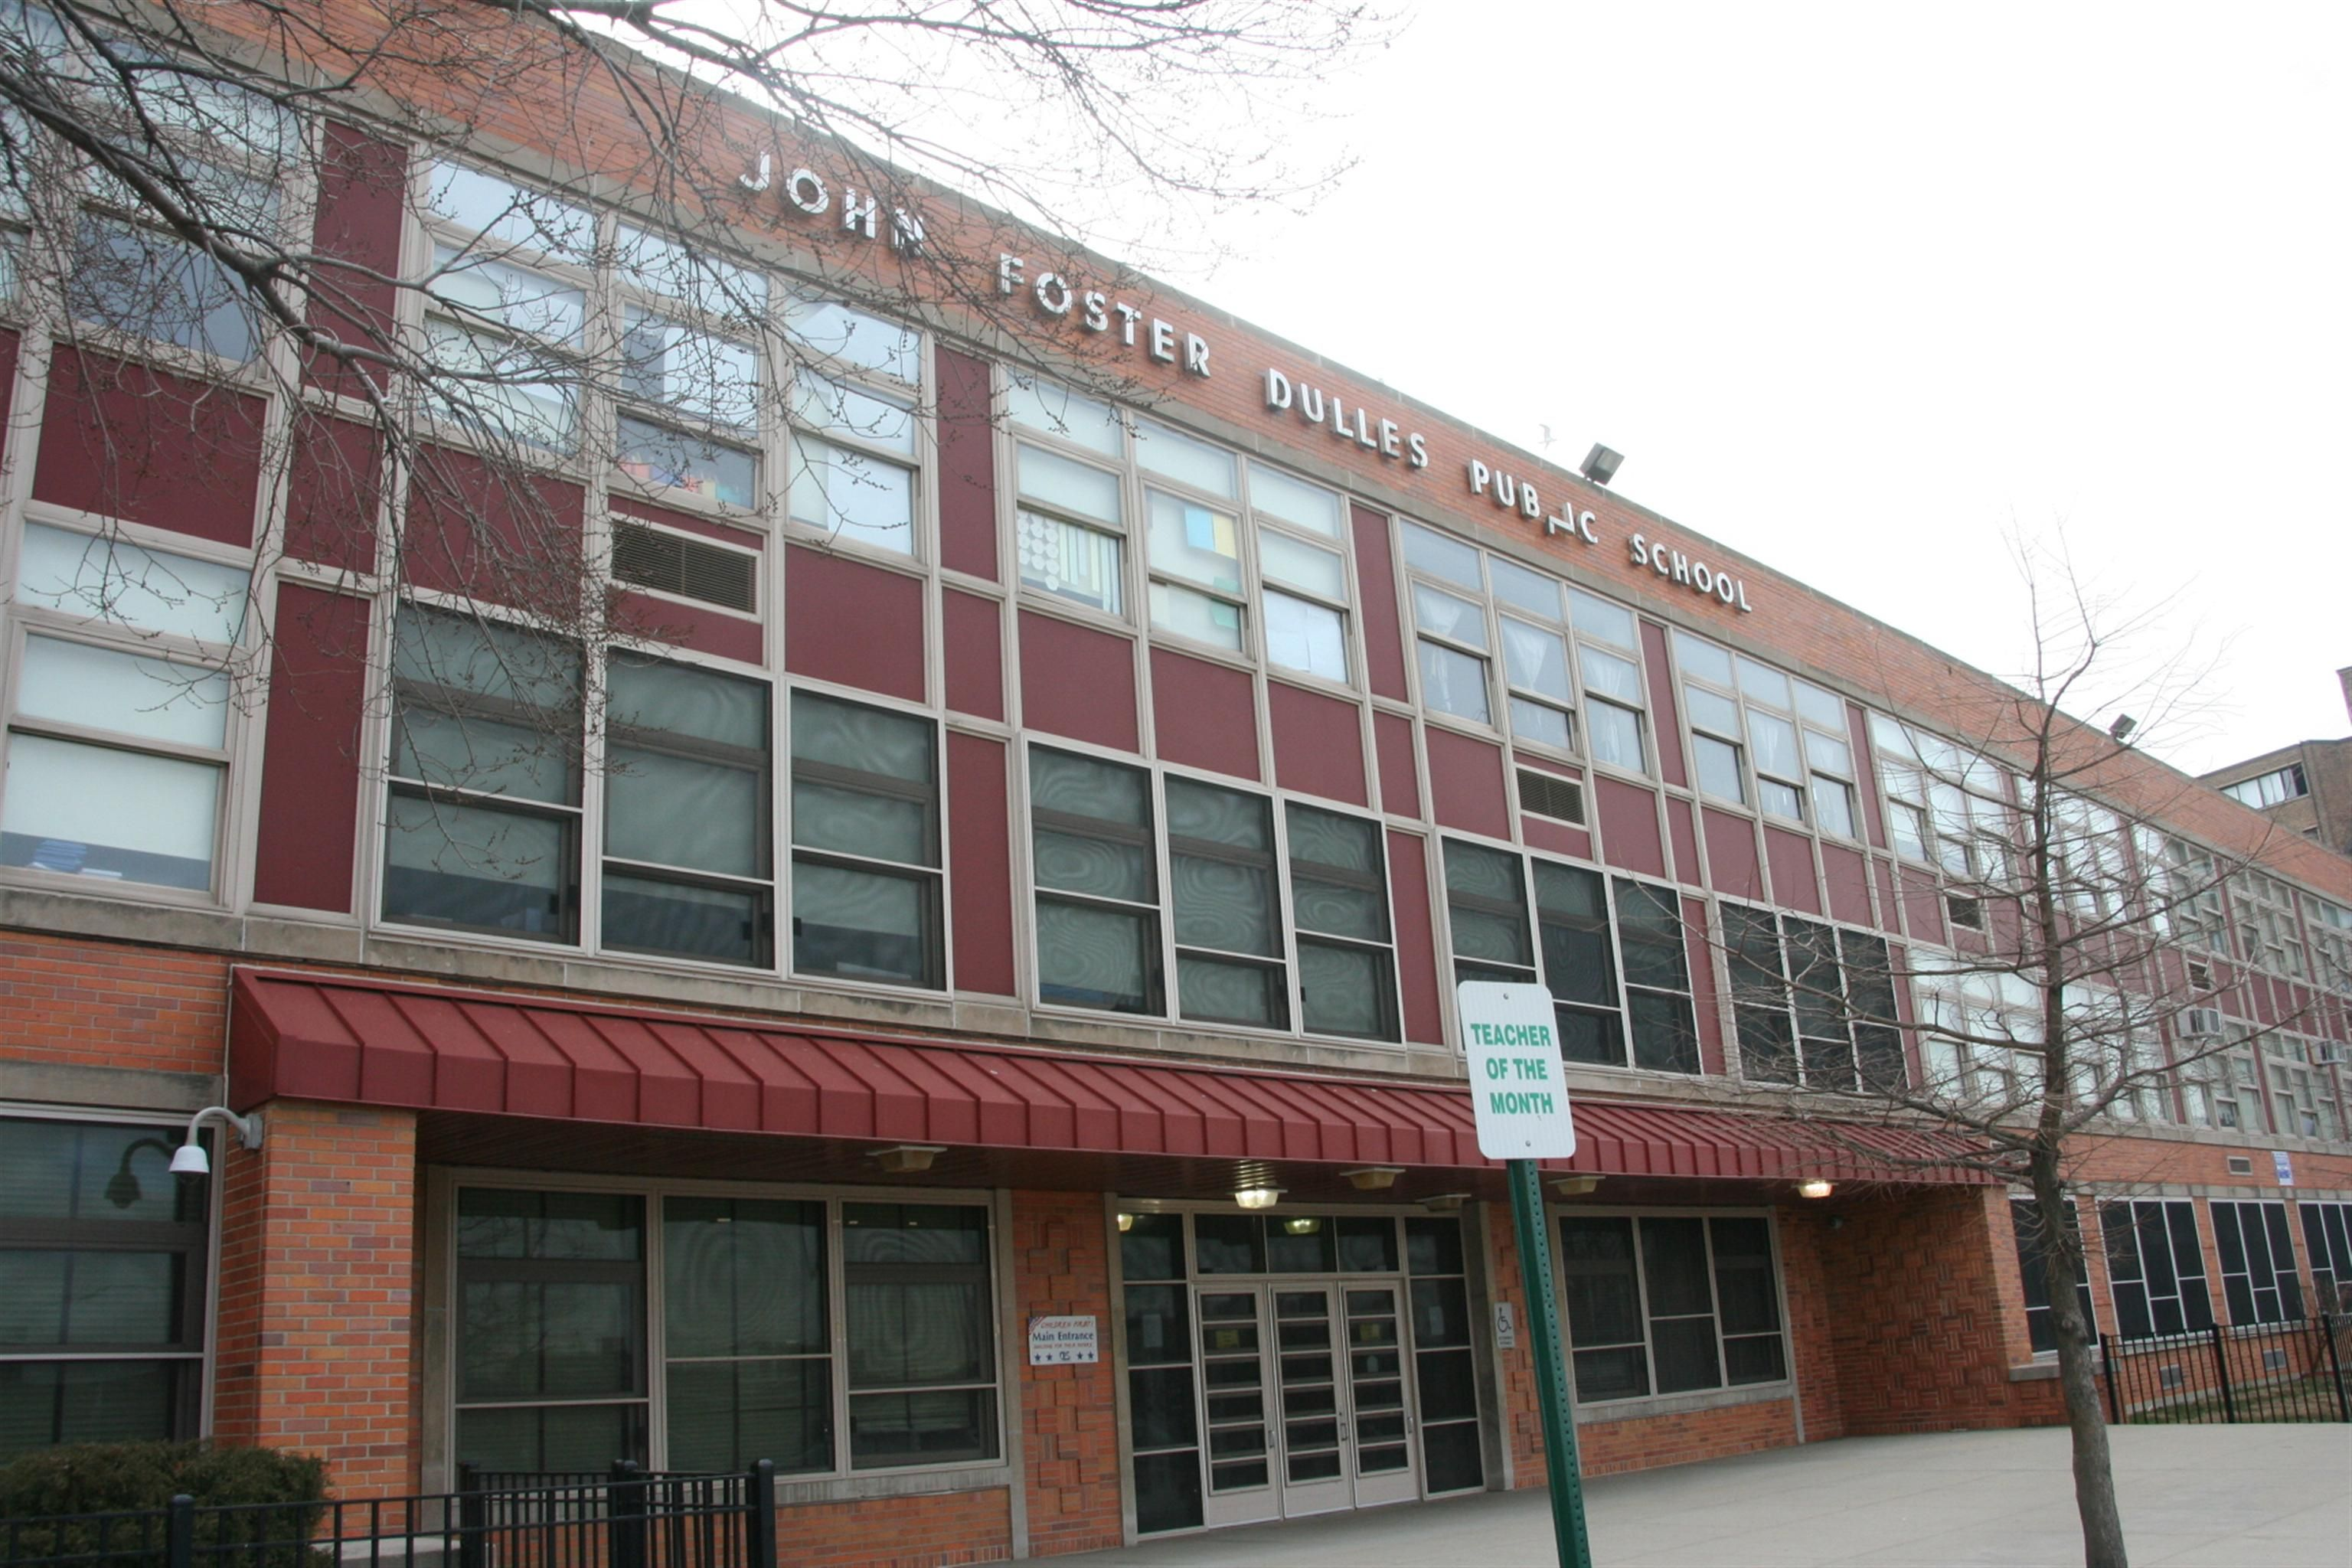 featured image John Foster Dulles Elementary School